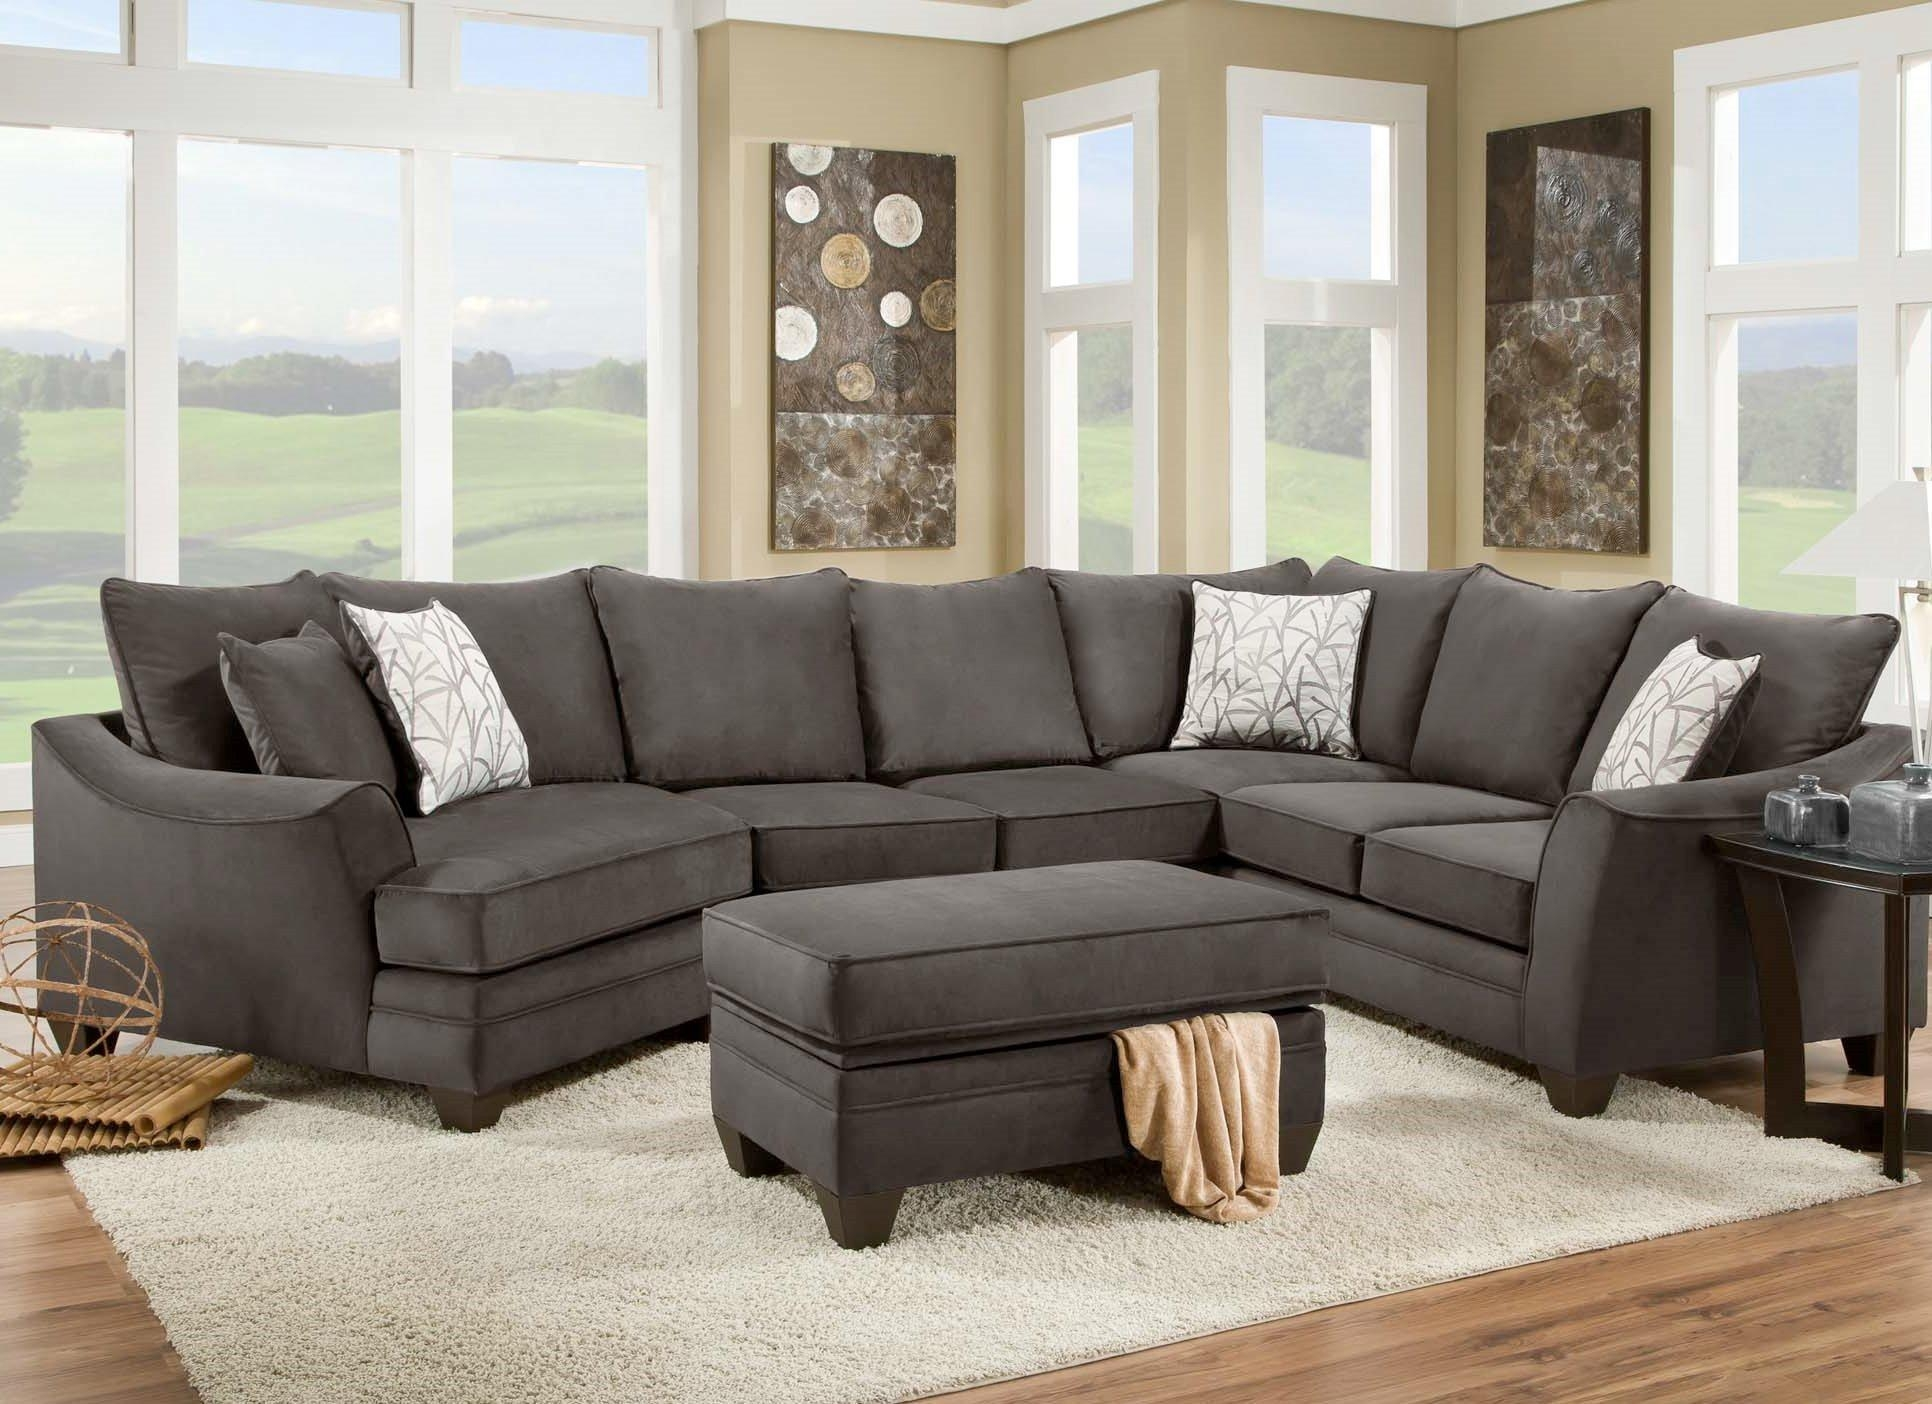 American Furniture 3810 Sectional Sofa That Seats 5 With Left Side With Regard To Sectional Cuddler (Image 1 of 20)